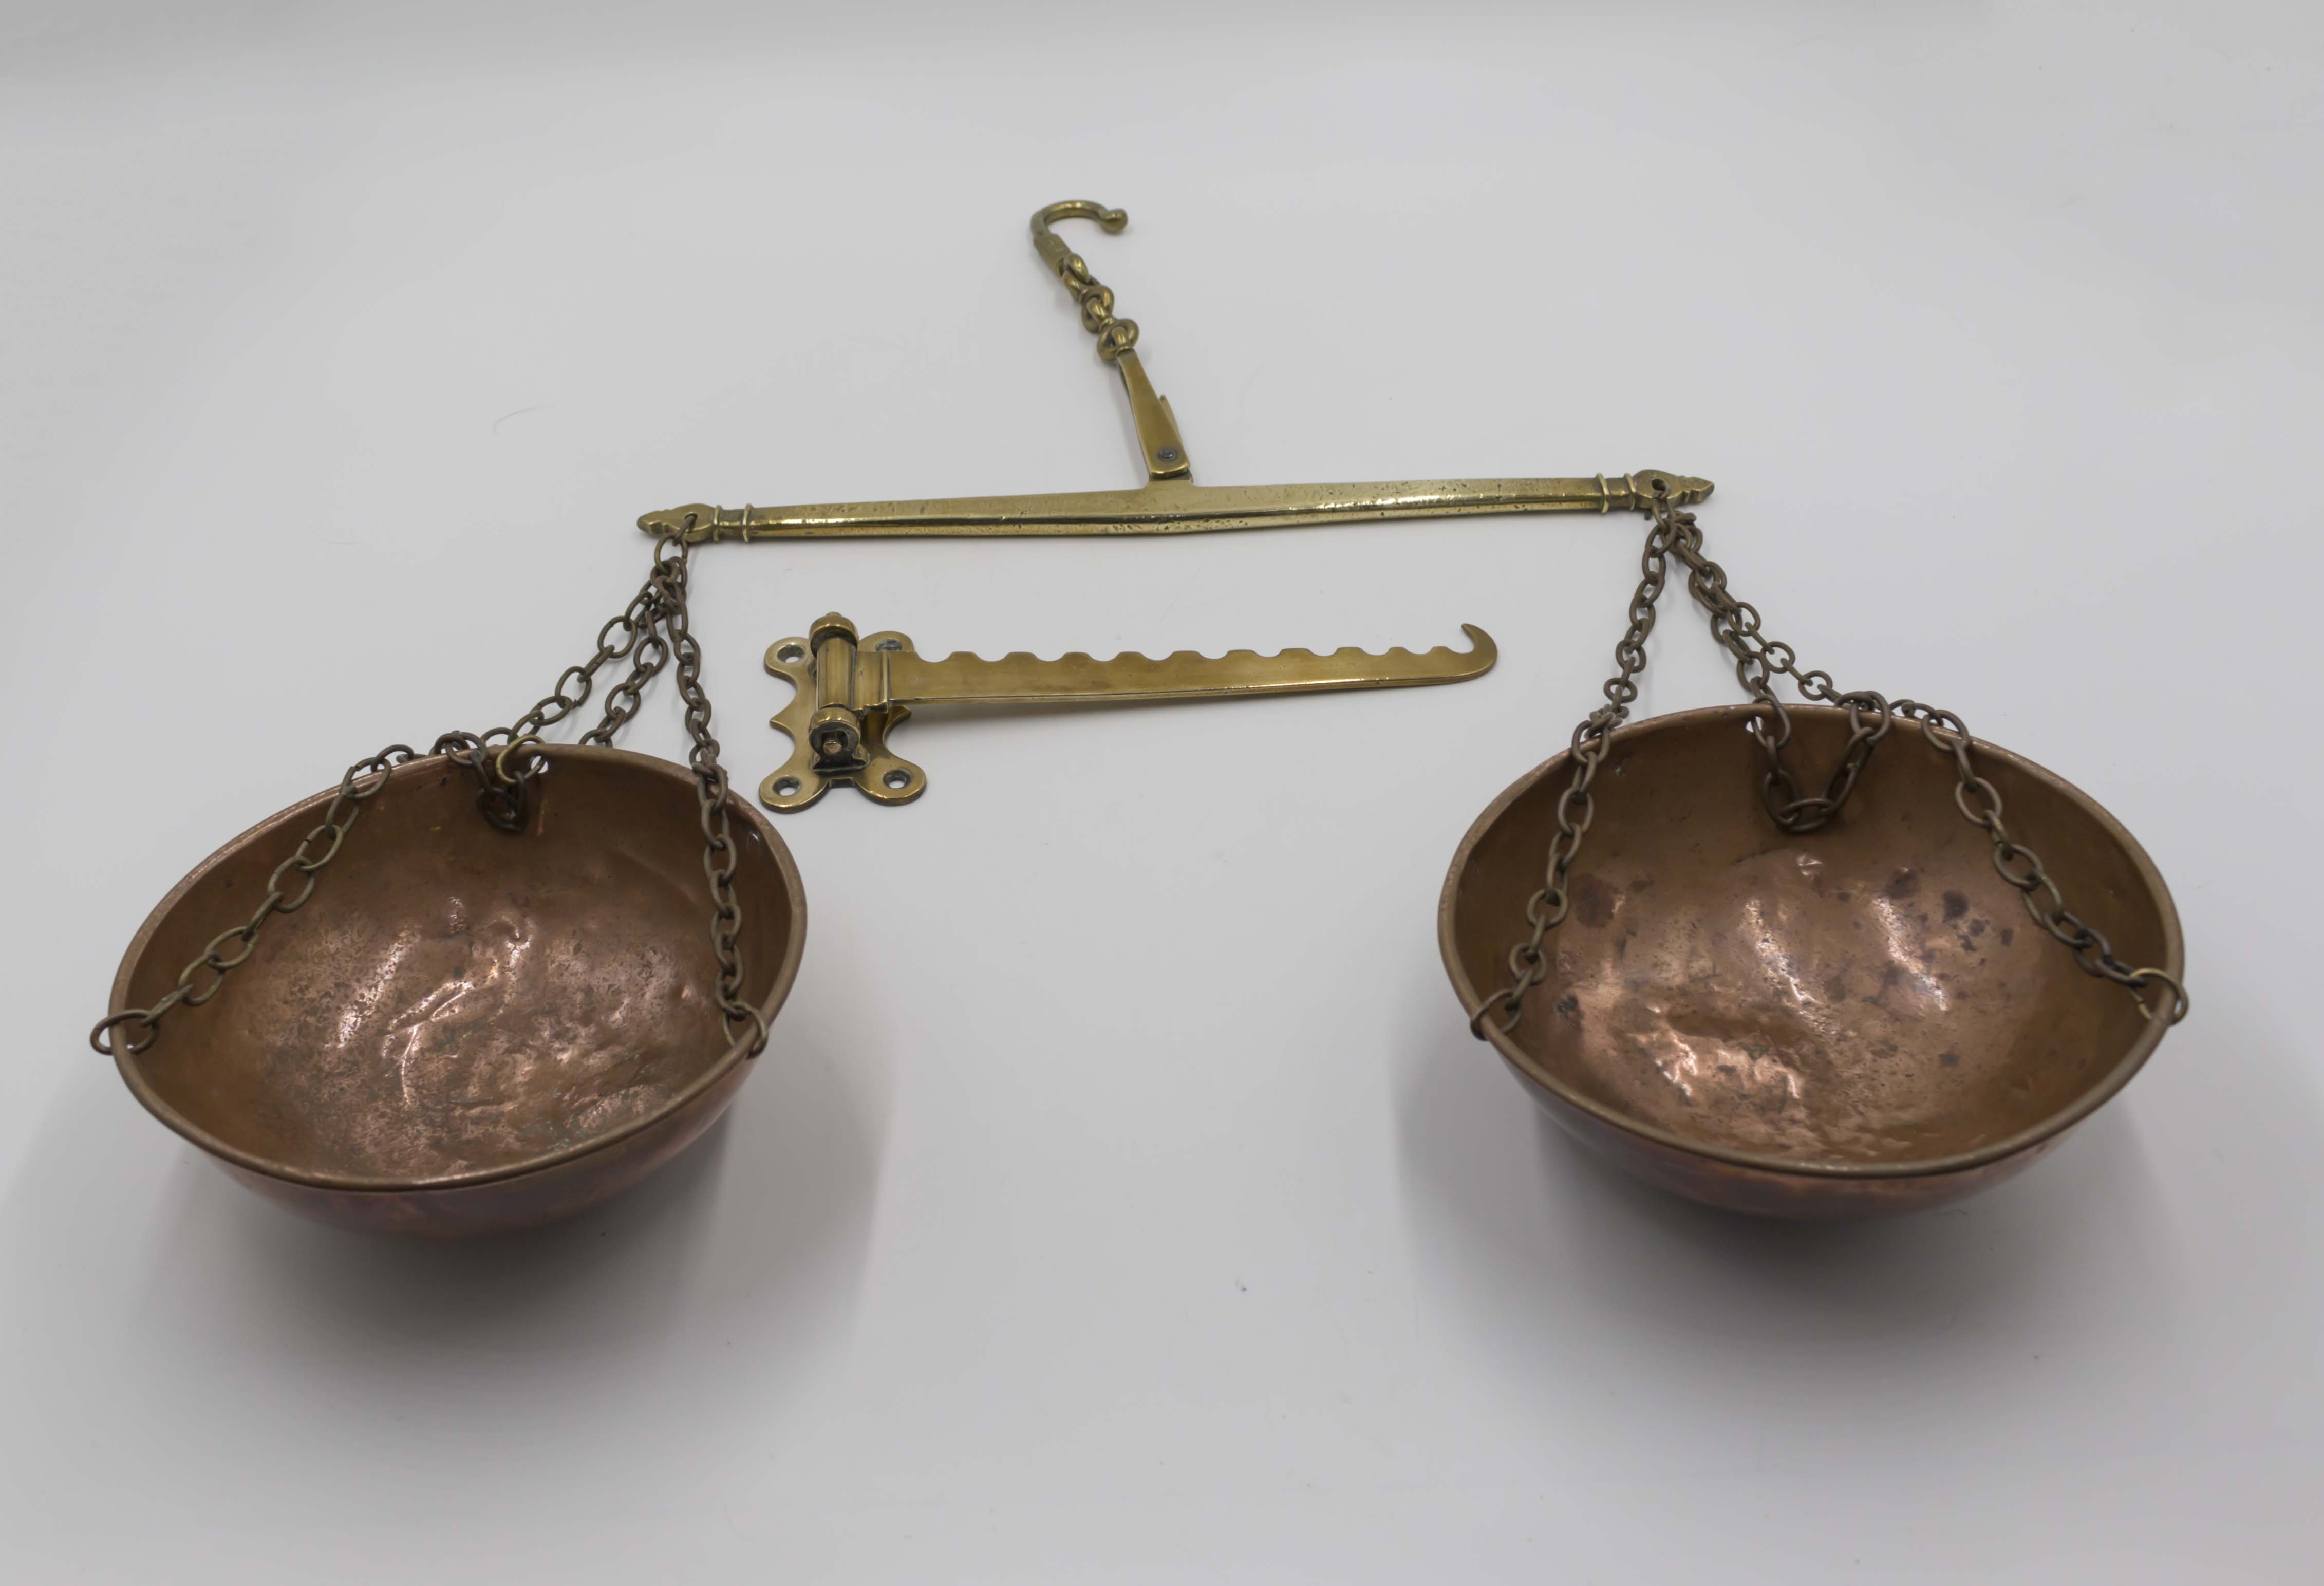 Lot 7 - A pair of vintage copper and brass scales